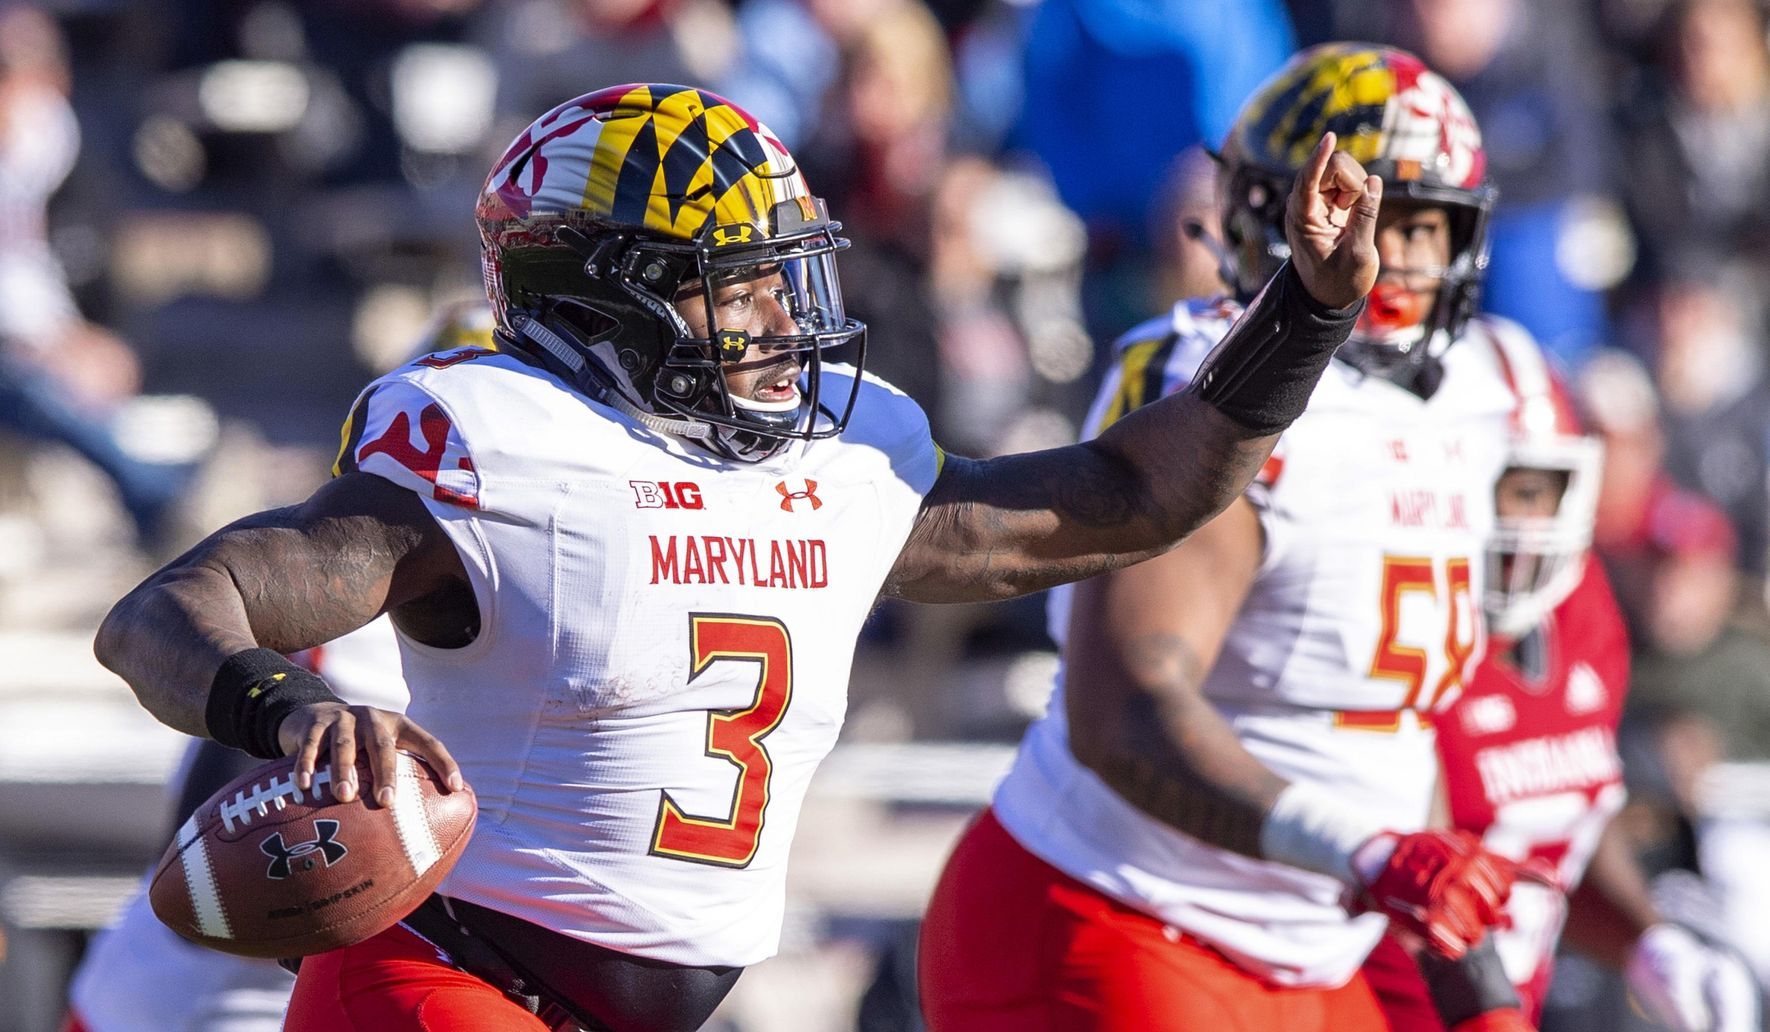 Maryland_next_challenge_football_15497_c0-0-3600-2098_s1770x1032